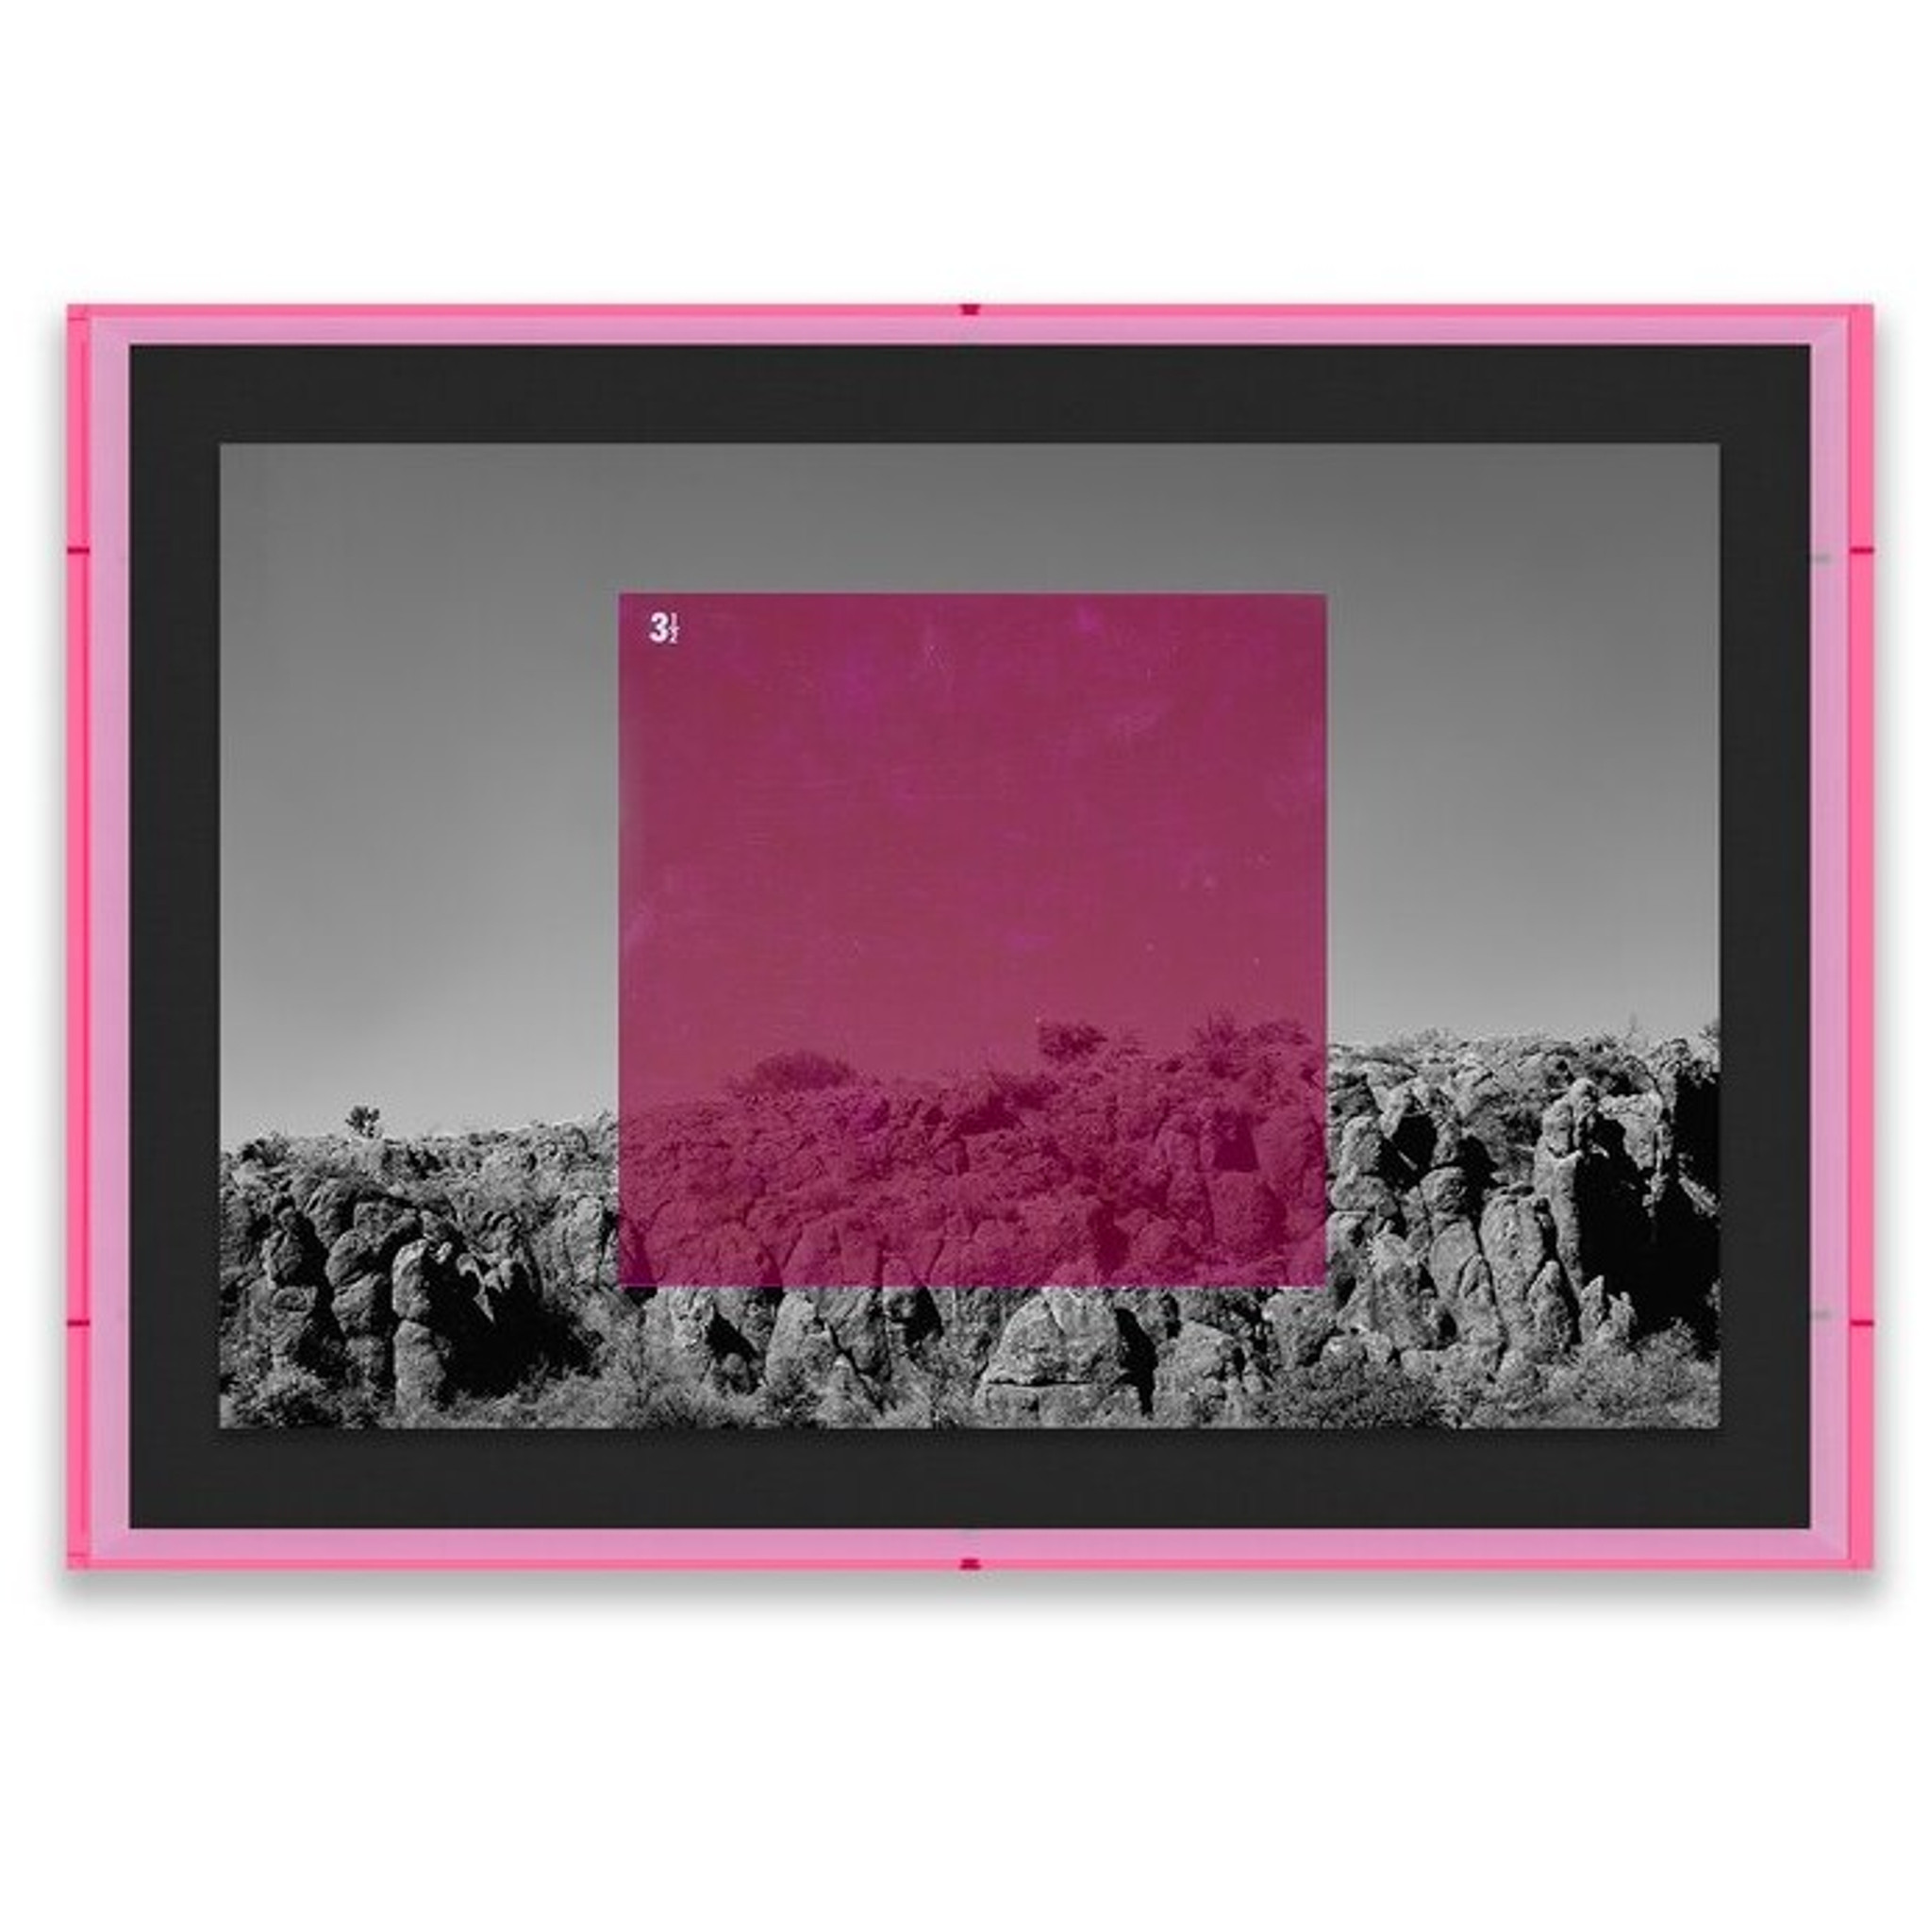 Pink on BW' Graphic Art Four Hands Art Studio black white photography lucite frame